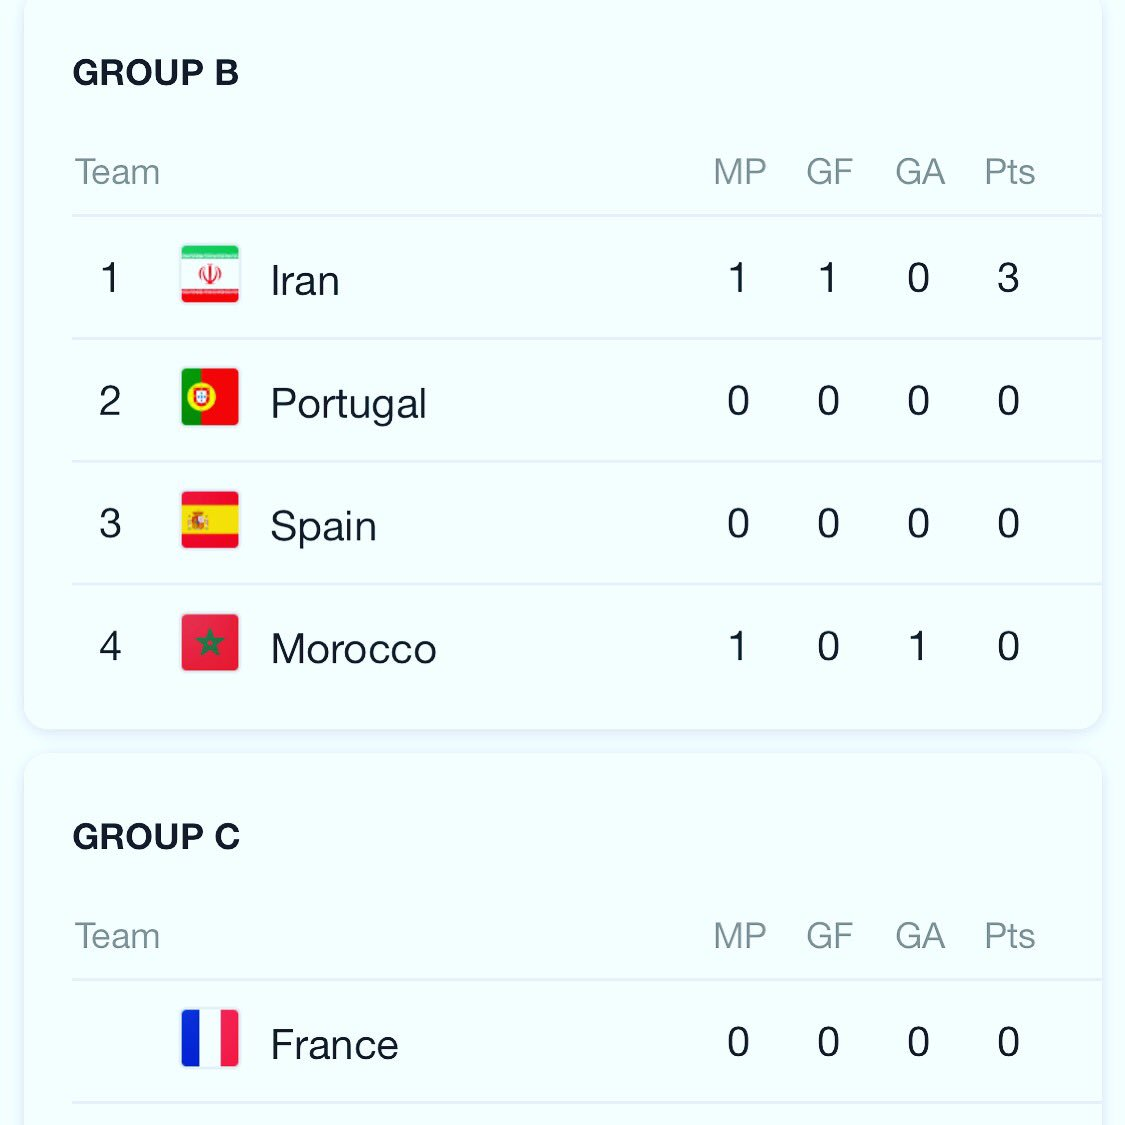 I think we should just end the #worldcup now and whoever has the most points wins! #TeamMelli